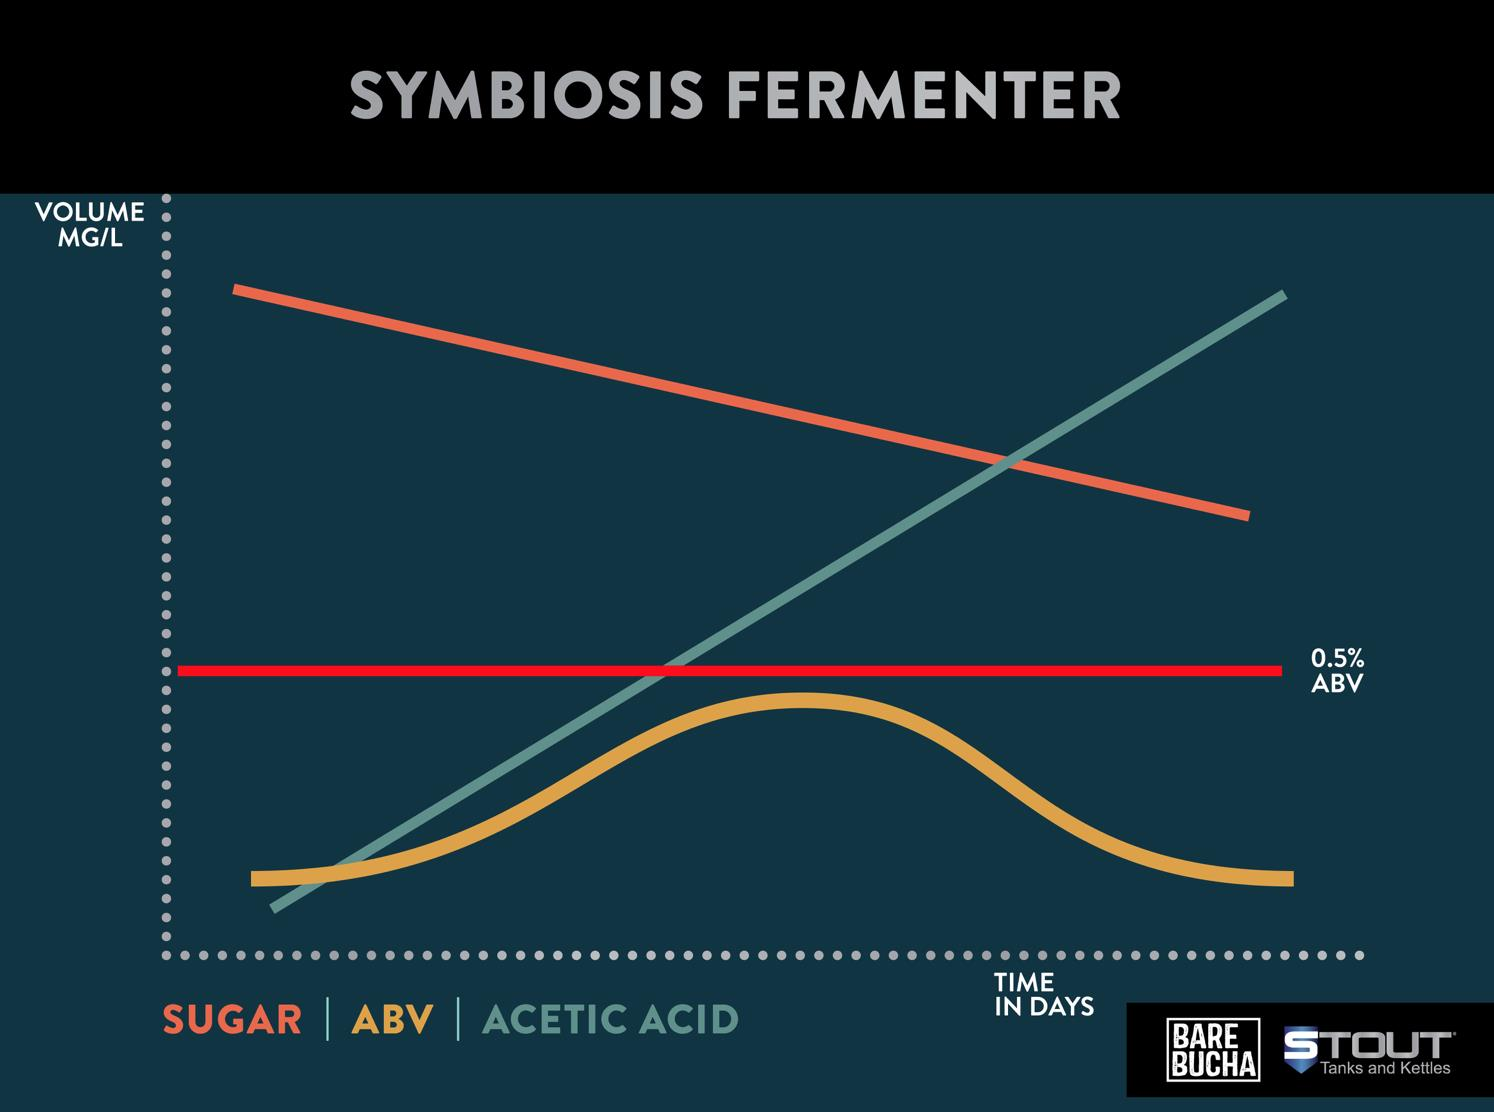 This chart shows results of the Symbiosis Fermenter